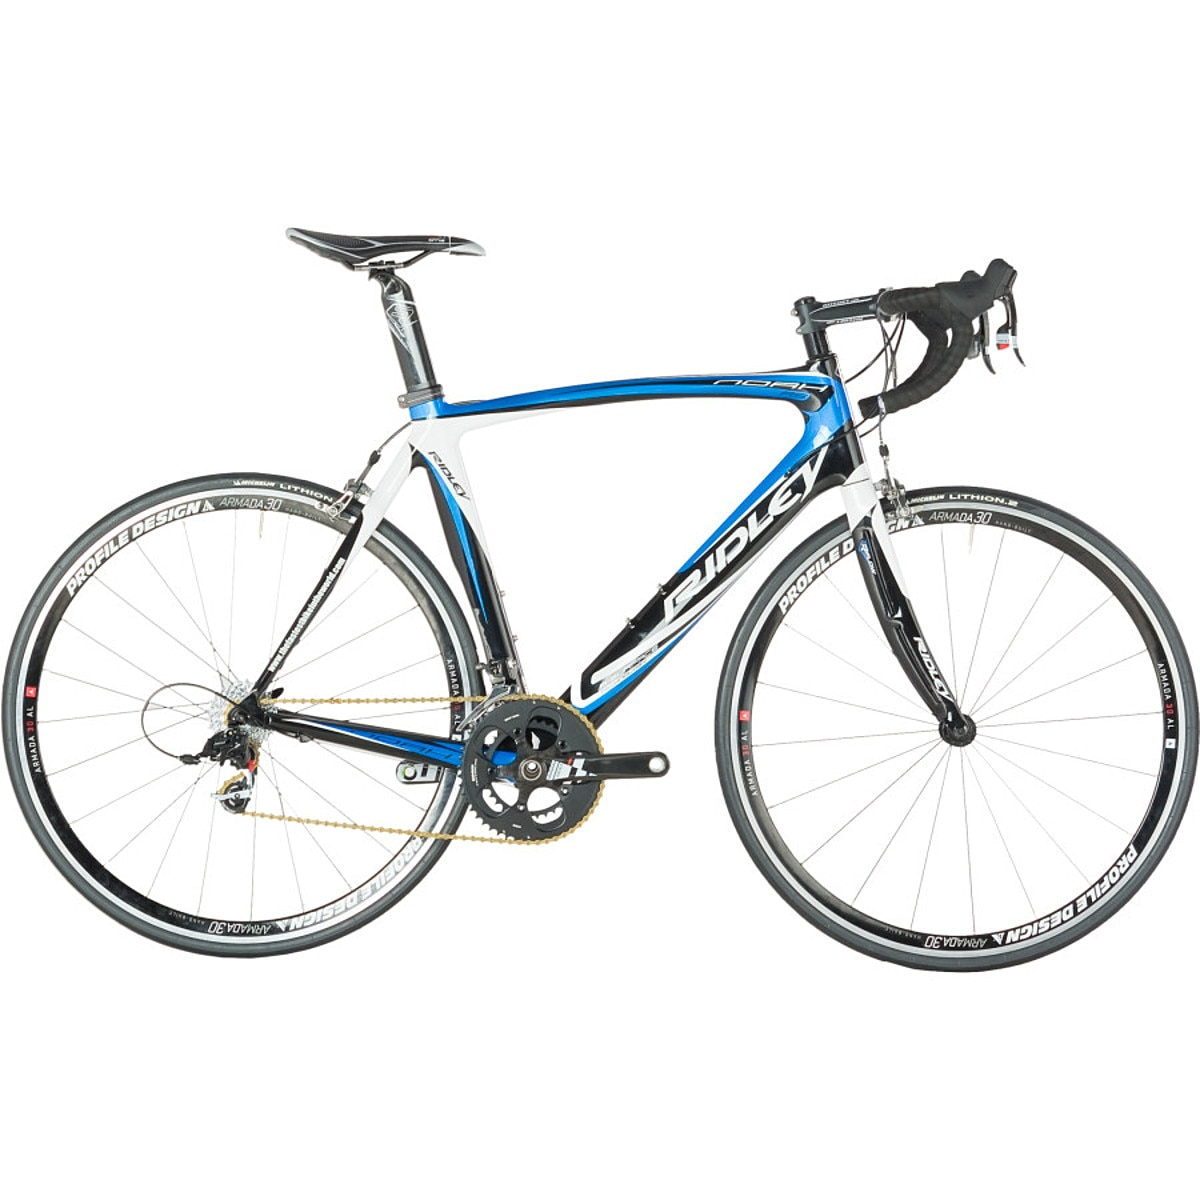 Ridley Noah Rs Sram Red Complete Bike 2012 Competitive